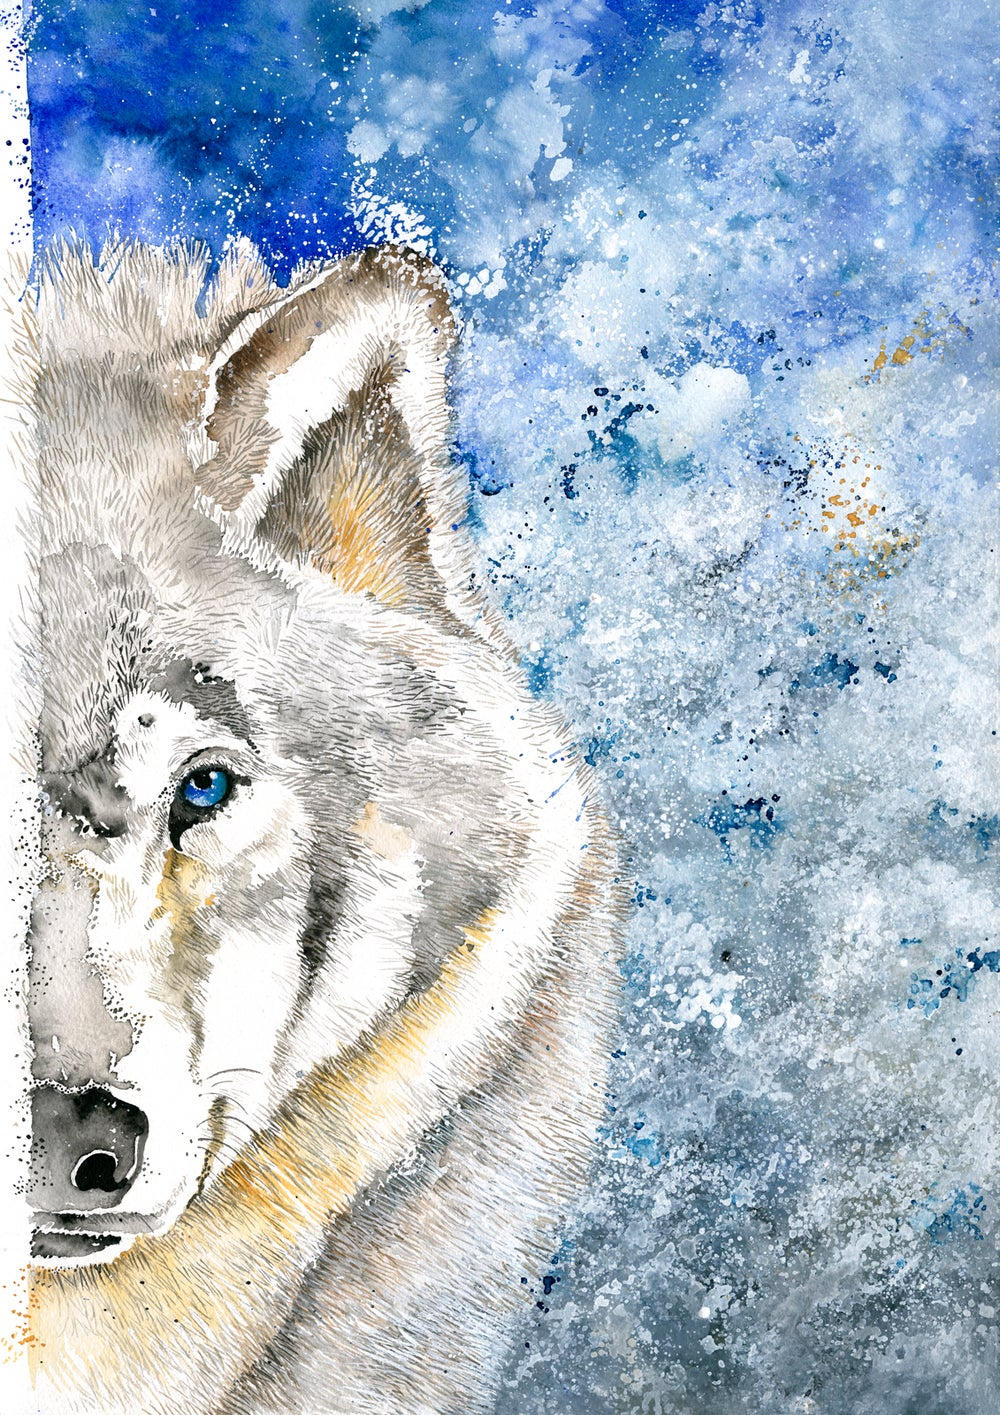 Image of Rama - The Majestic Wolf with FREE SHIPPING